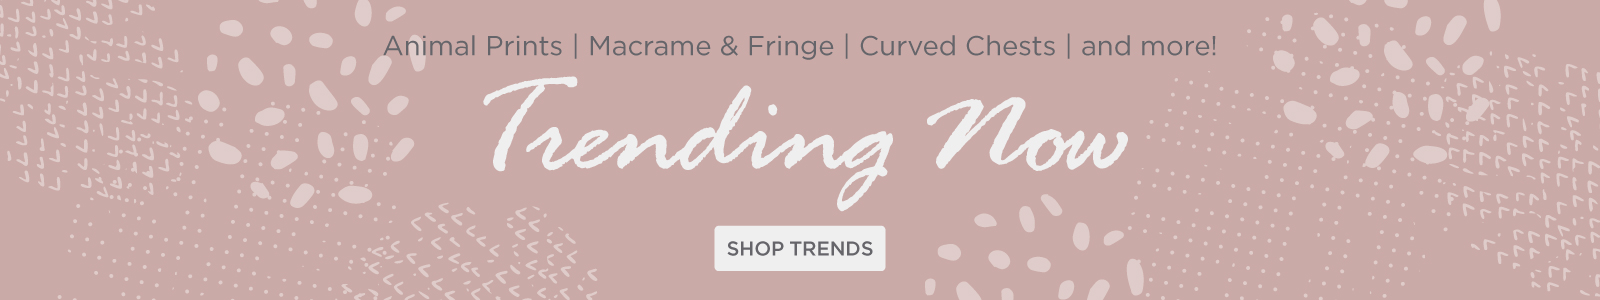 Trending now: Shop animal prints, macrame and fringe, curved chests and more!